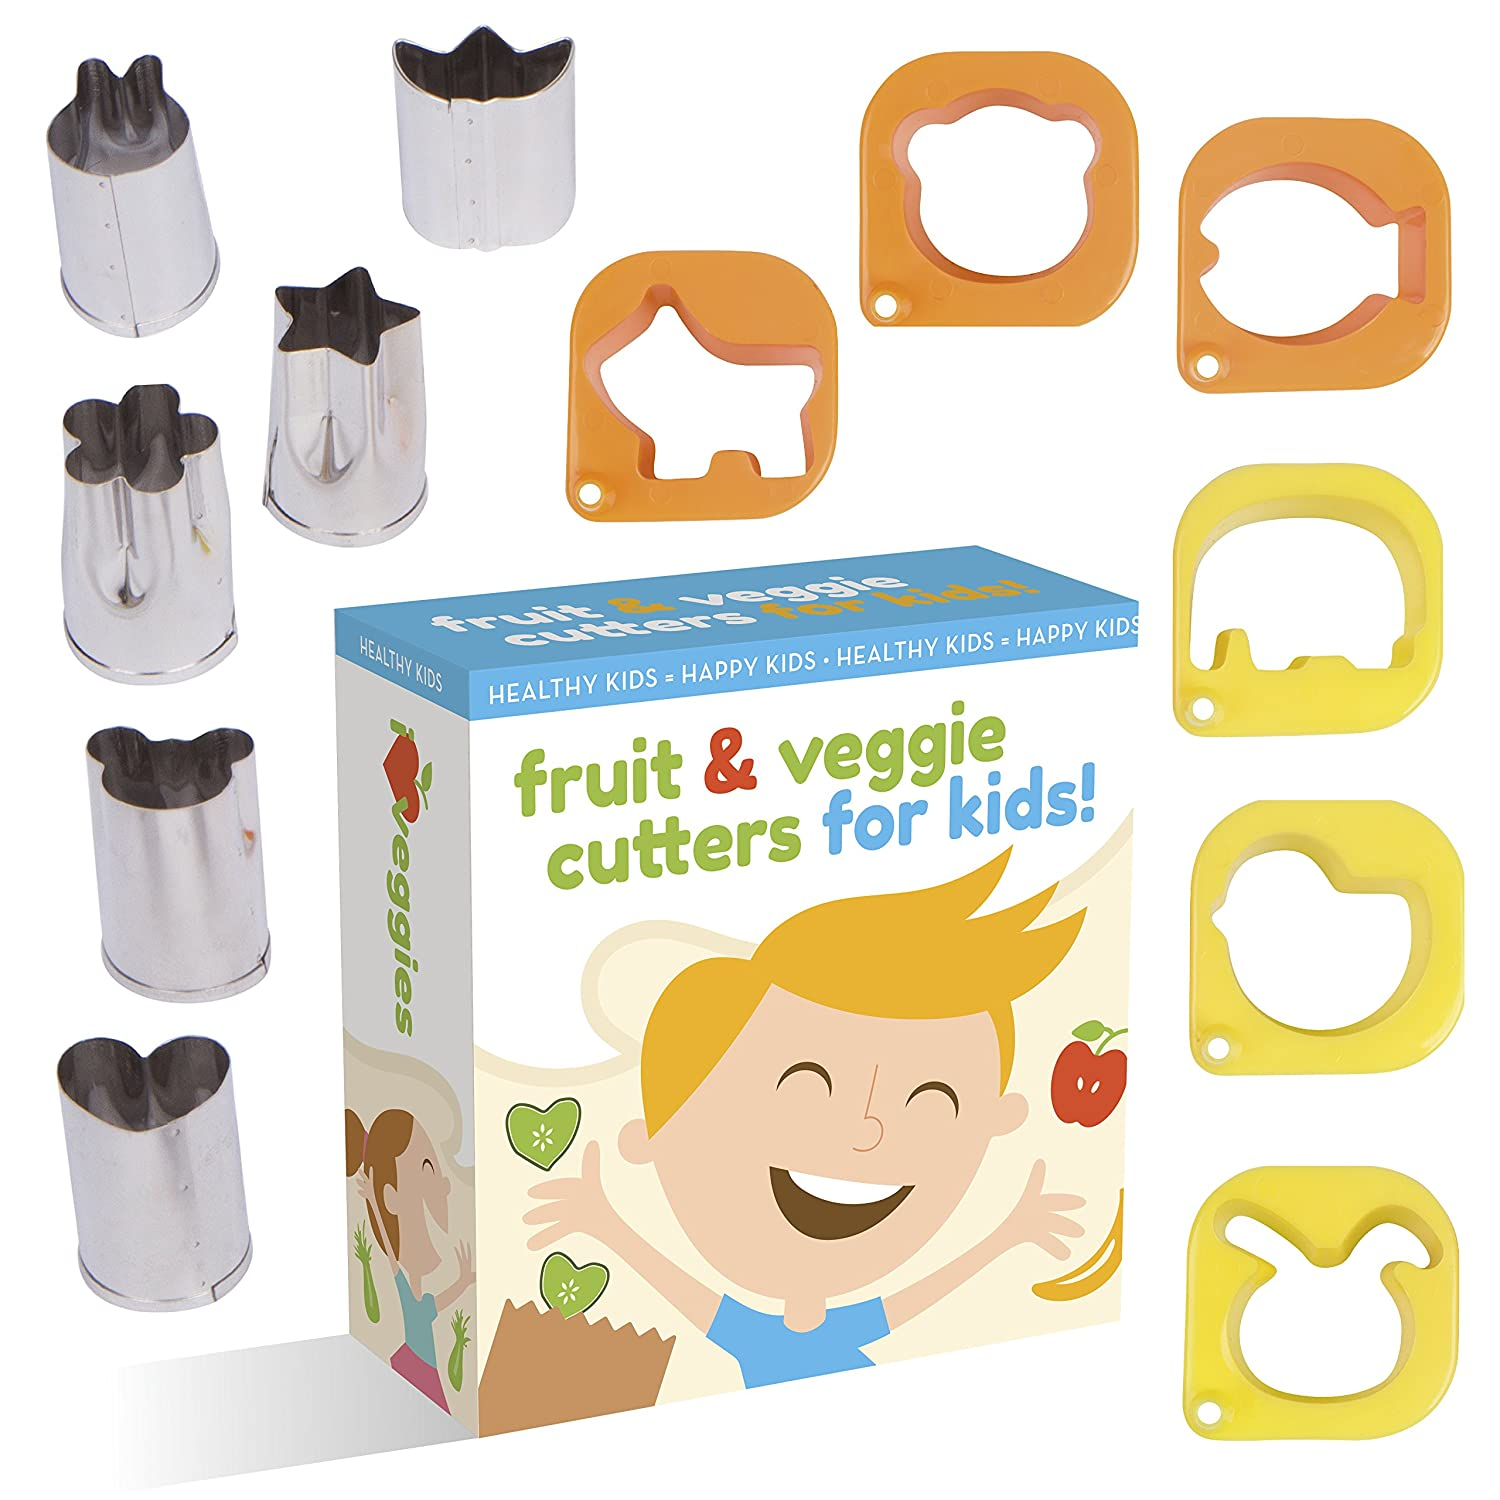 Fruit And Vegetable Cutter shape set For Kids By UpChefs - 12 Animal and Fun Shaped Mini cookie Cutter Mold Food Cutouts for Bento Lunch Boxes - Fruit & Veggie slicer press Stamp set for picky Eaters 19781981